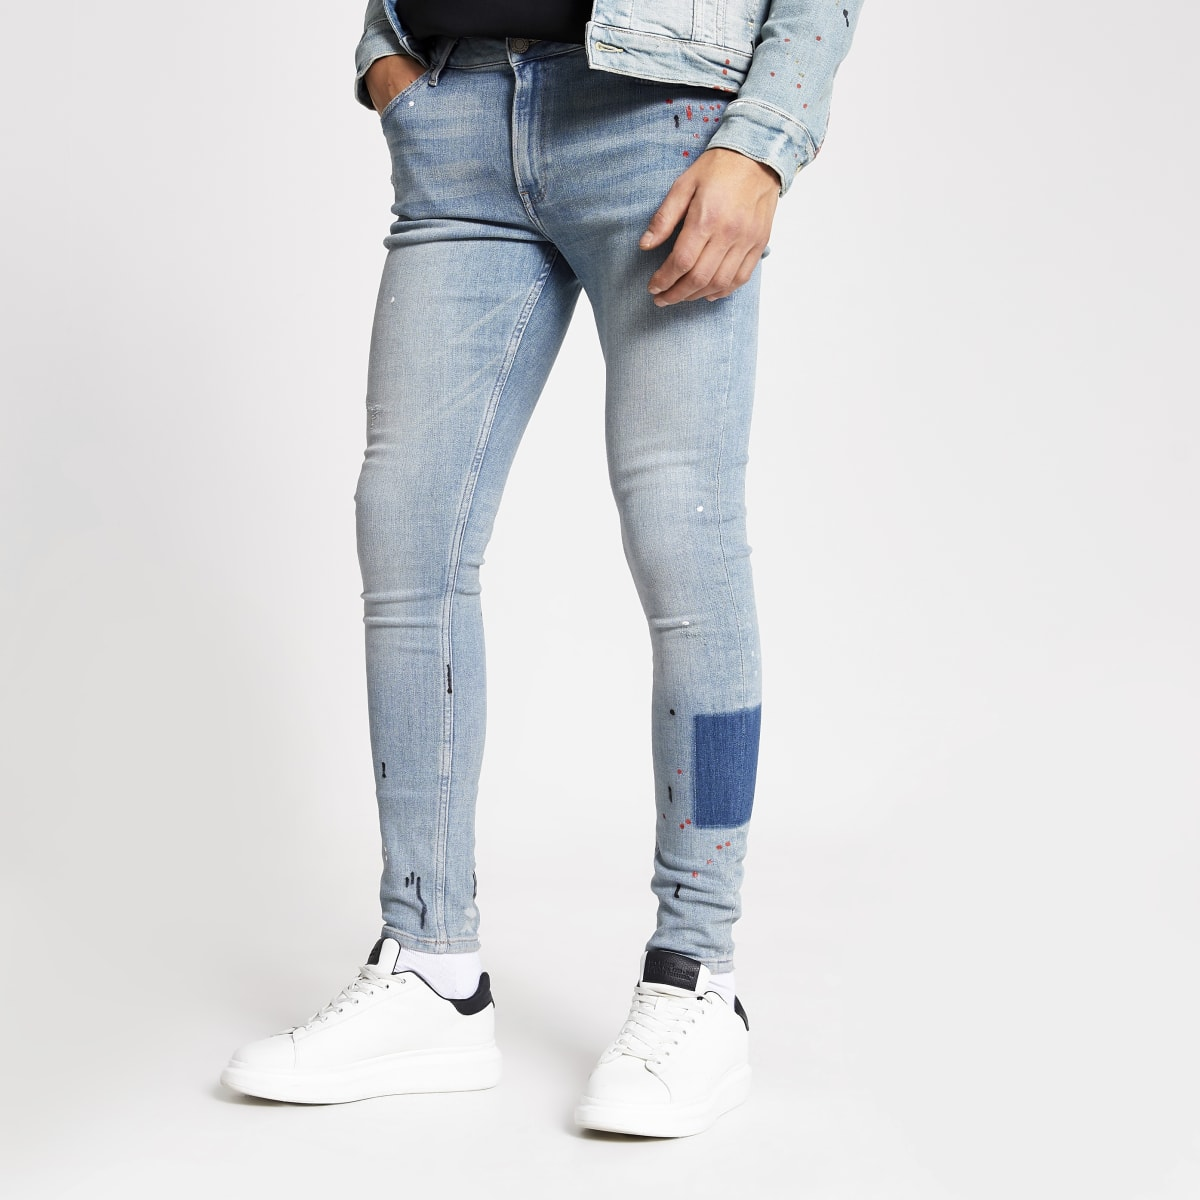 Smart Western mid blue Ollie spray on jeans